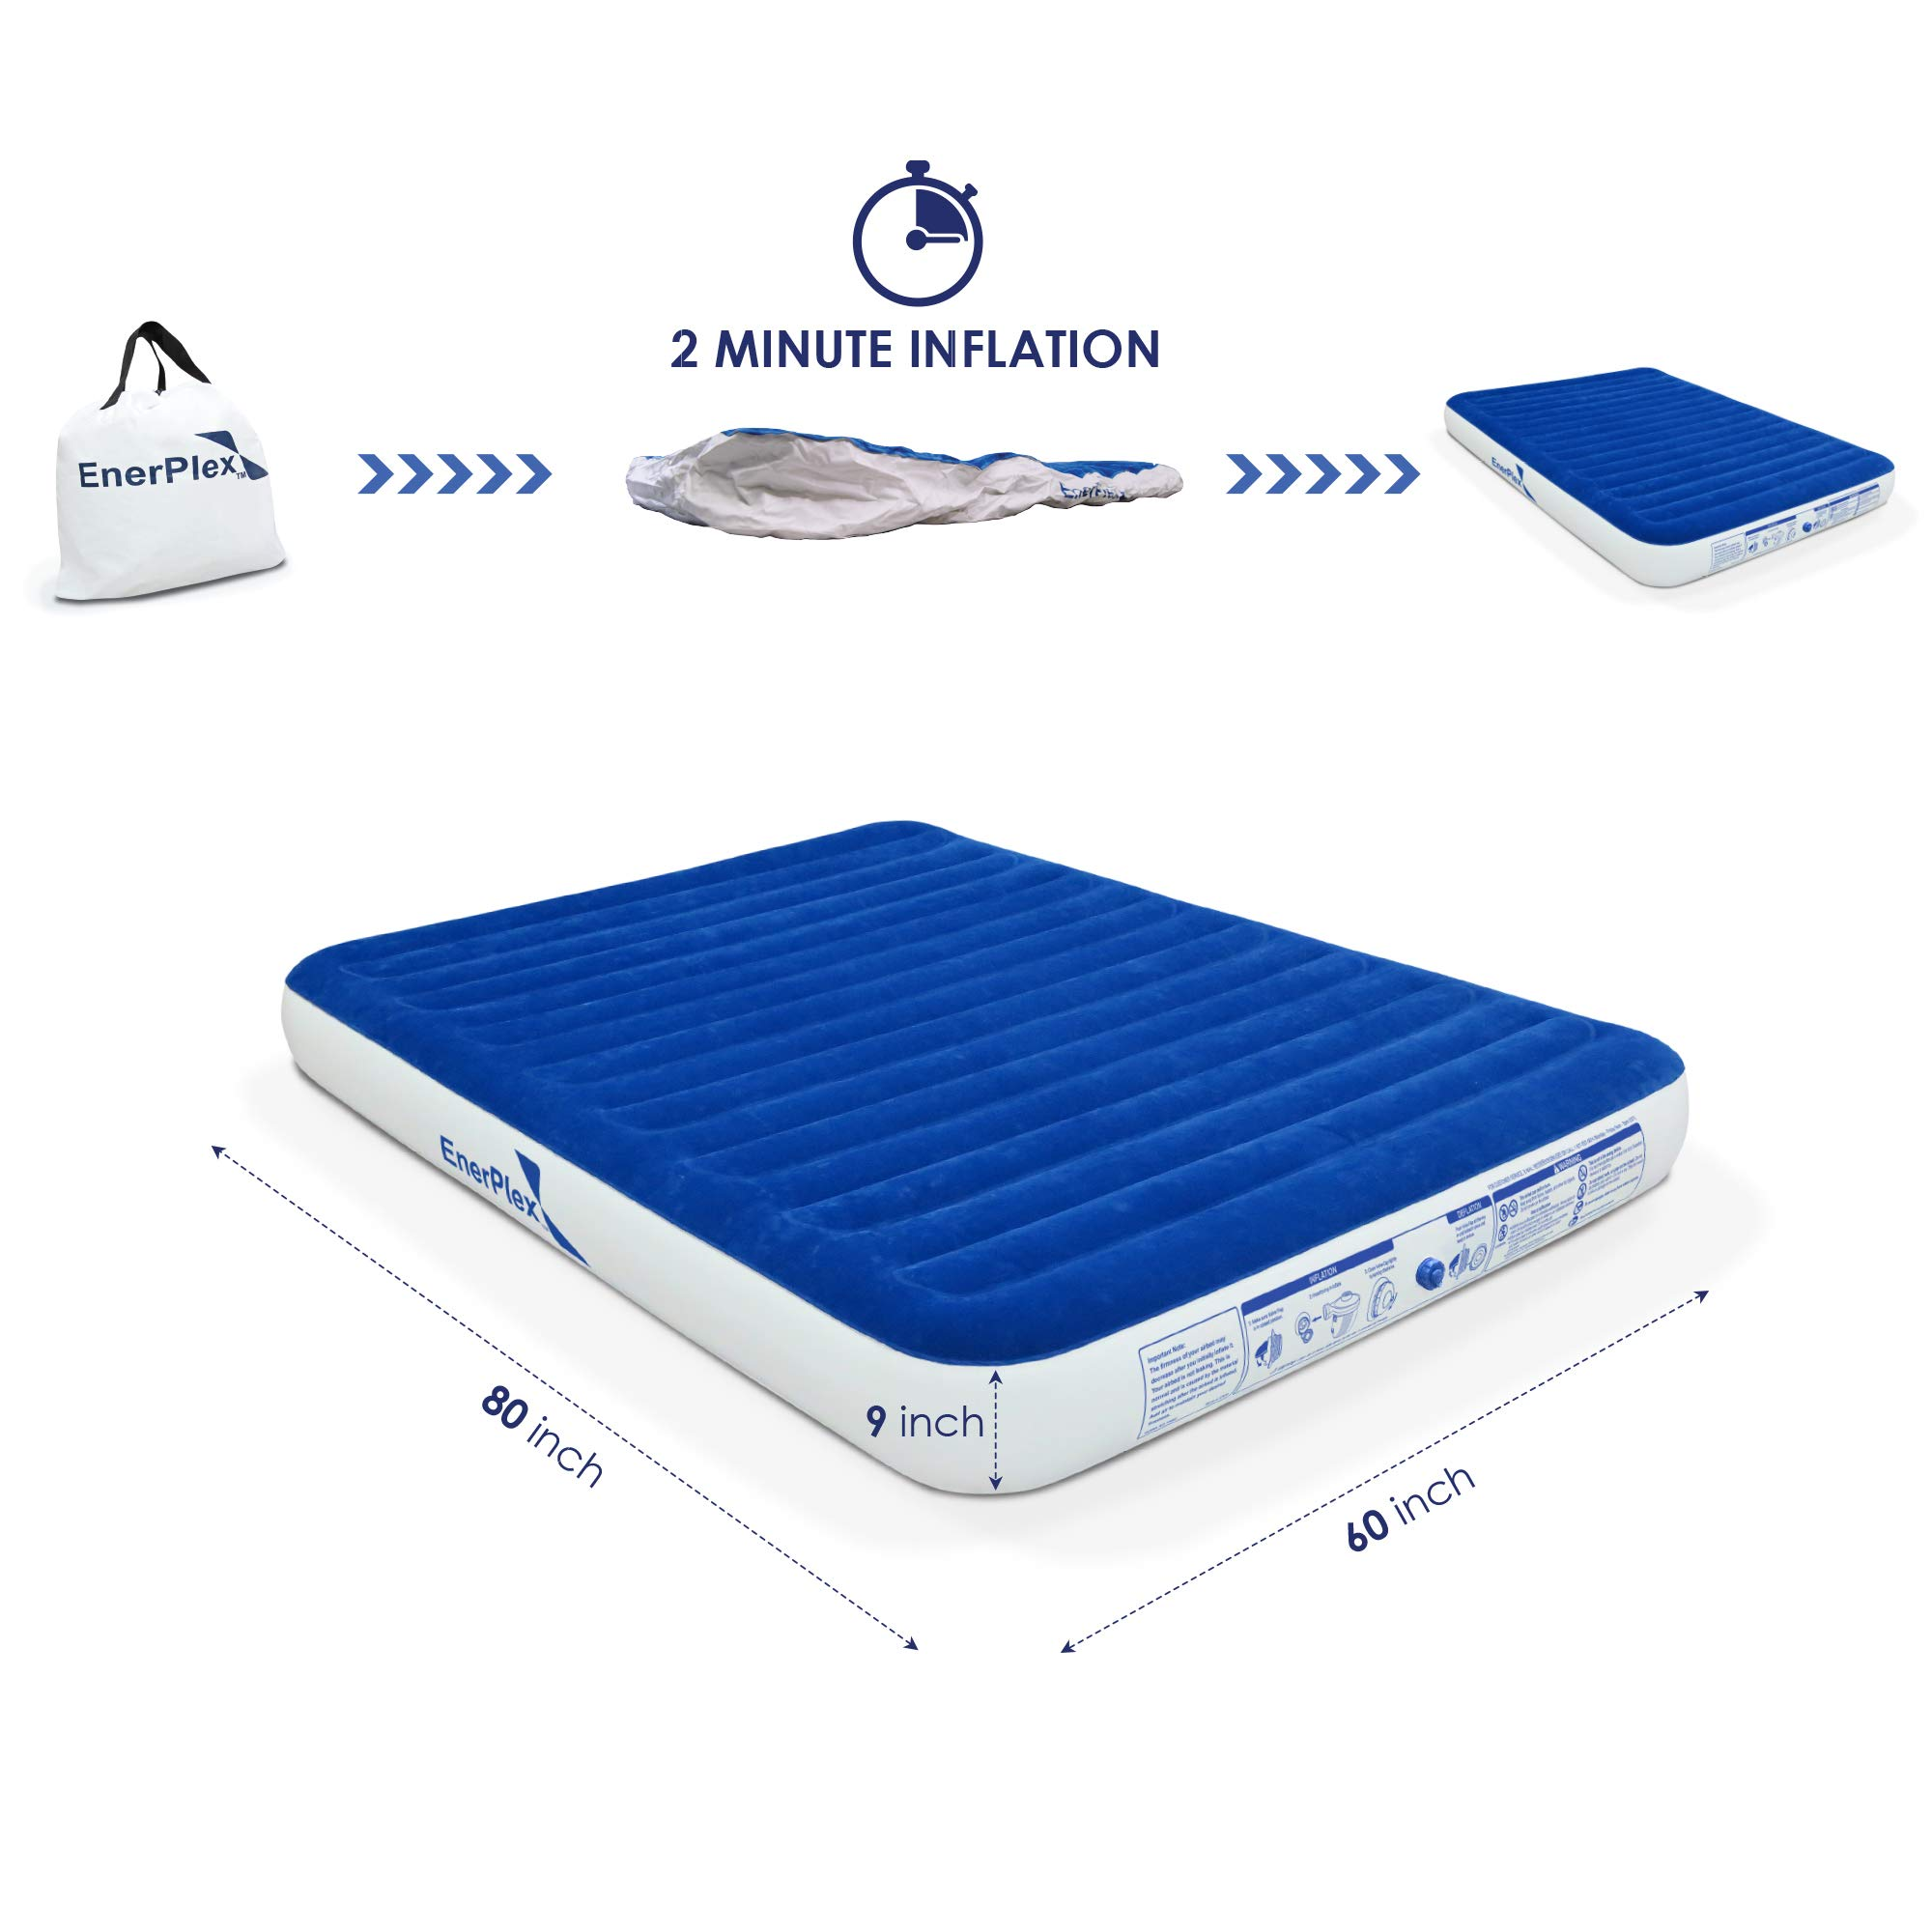 EnerPlex 2019 Camping Luxury Queen Size Air Mattress Camping Queen Airbed with High Speed Wireless Pump Single High Inflatable Blow Up Bed for Home Camping Travel 2-Year Warranty by EnerPlex (Image #2)